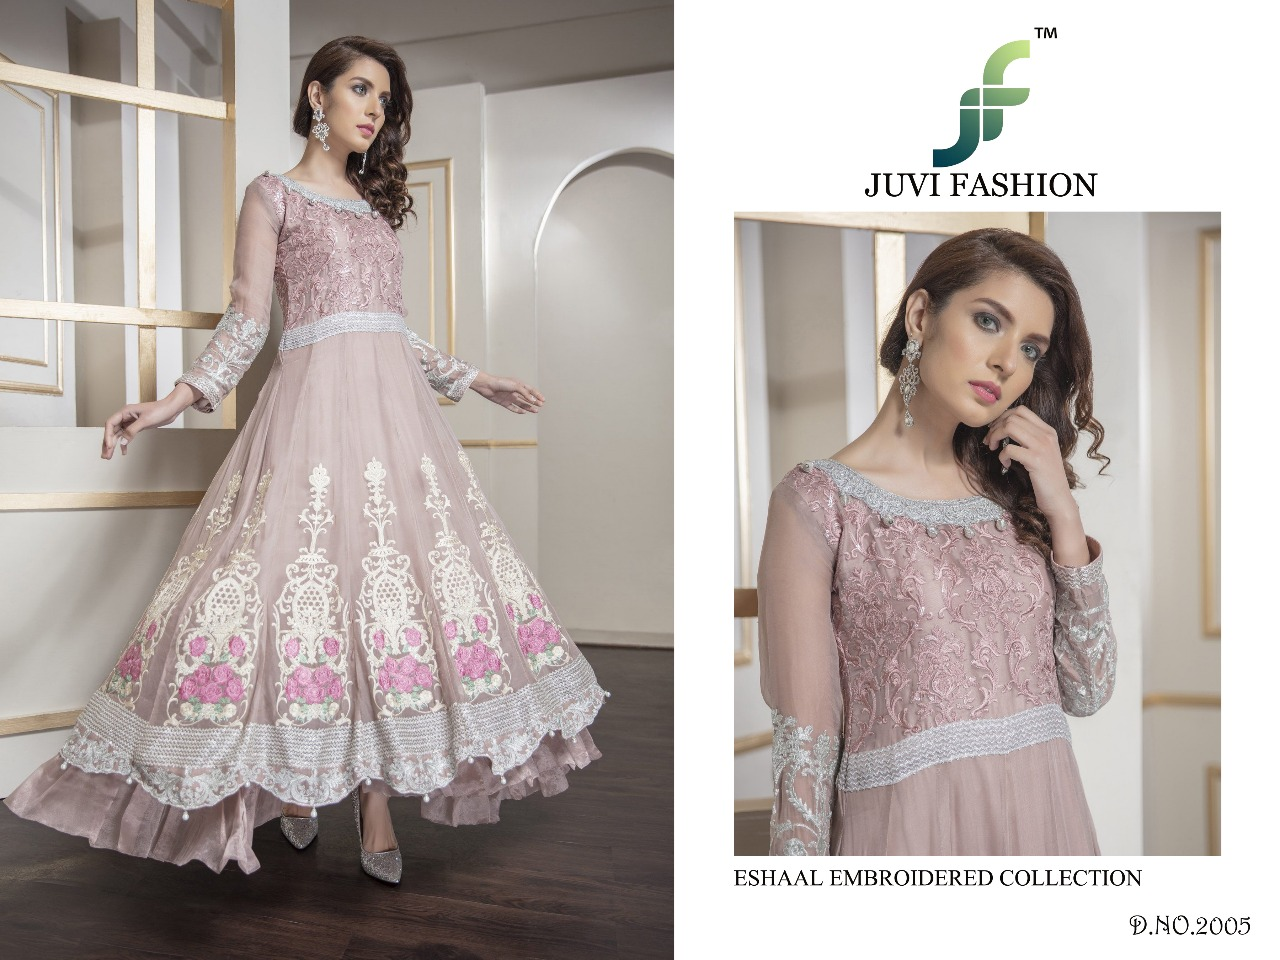 Juvi Fashion Eshaal Embroidered Collection 2005